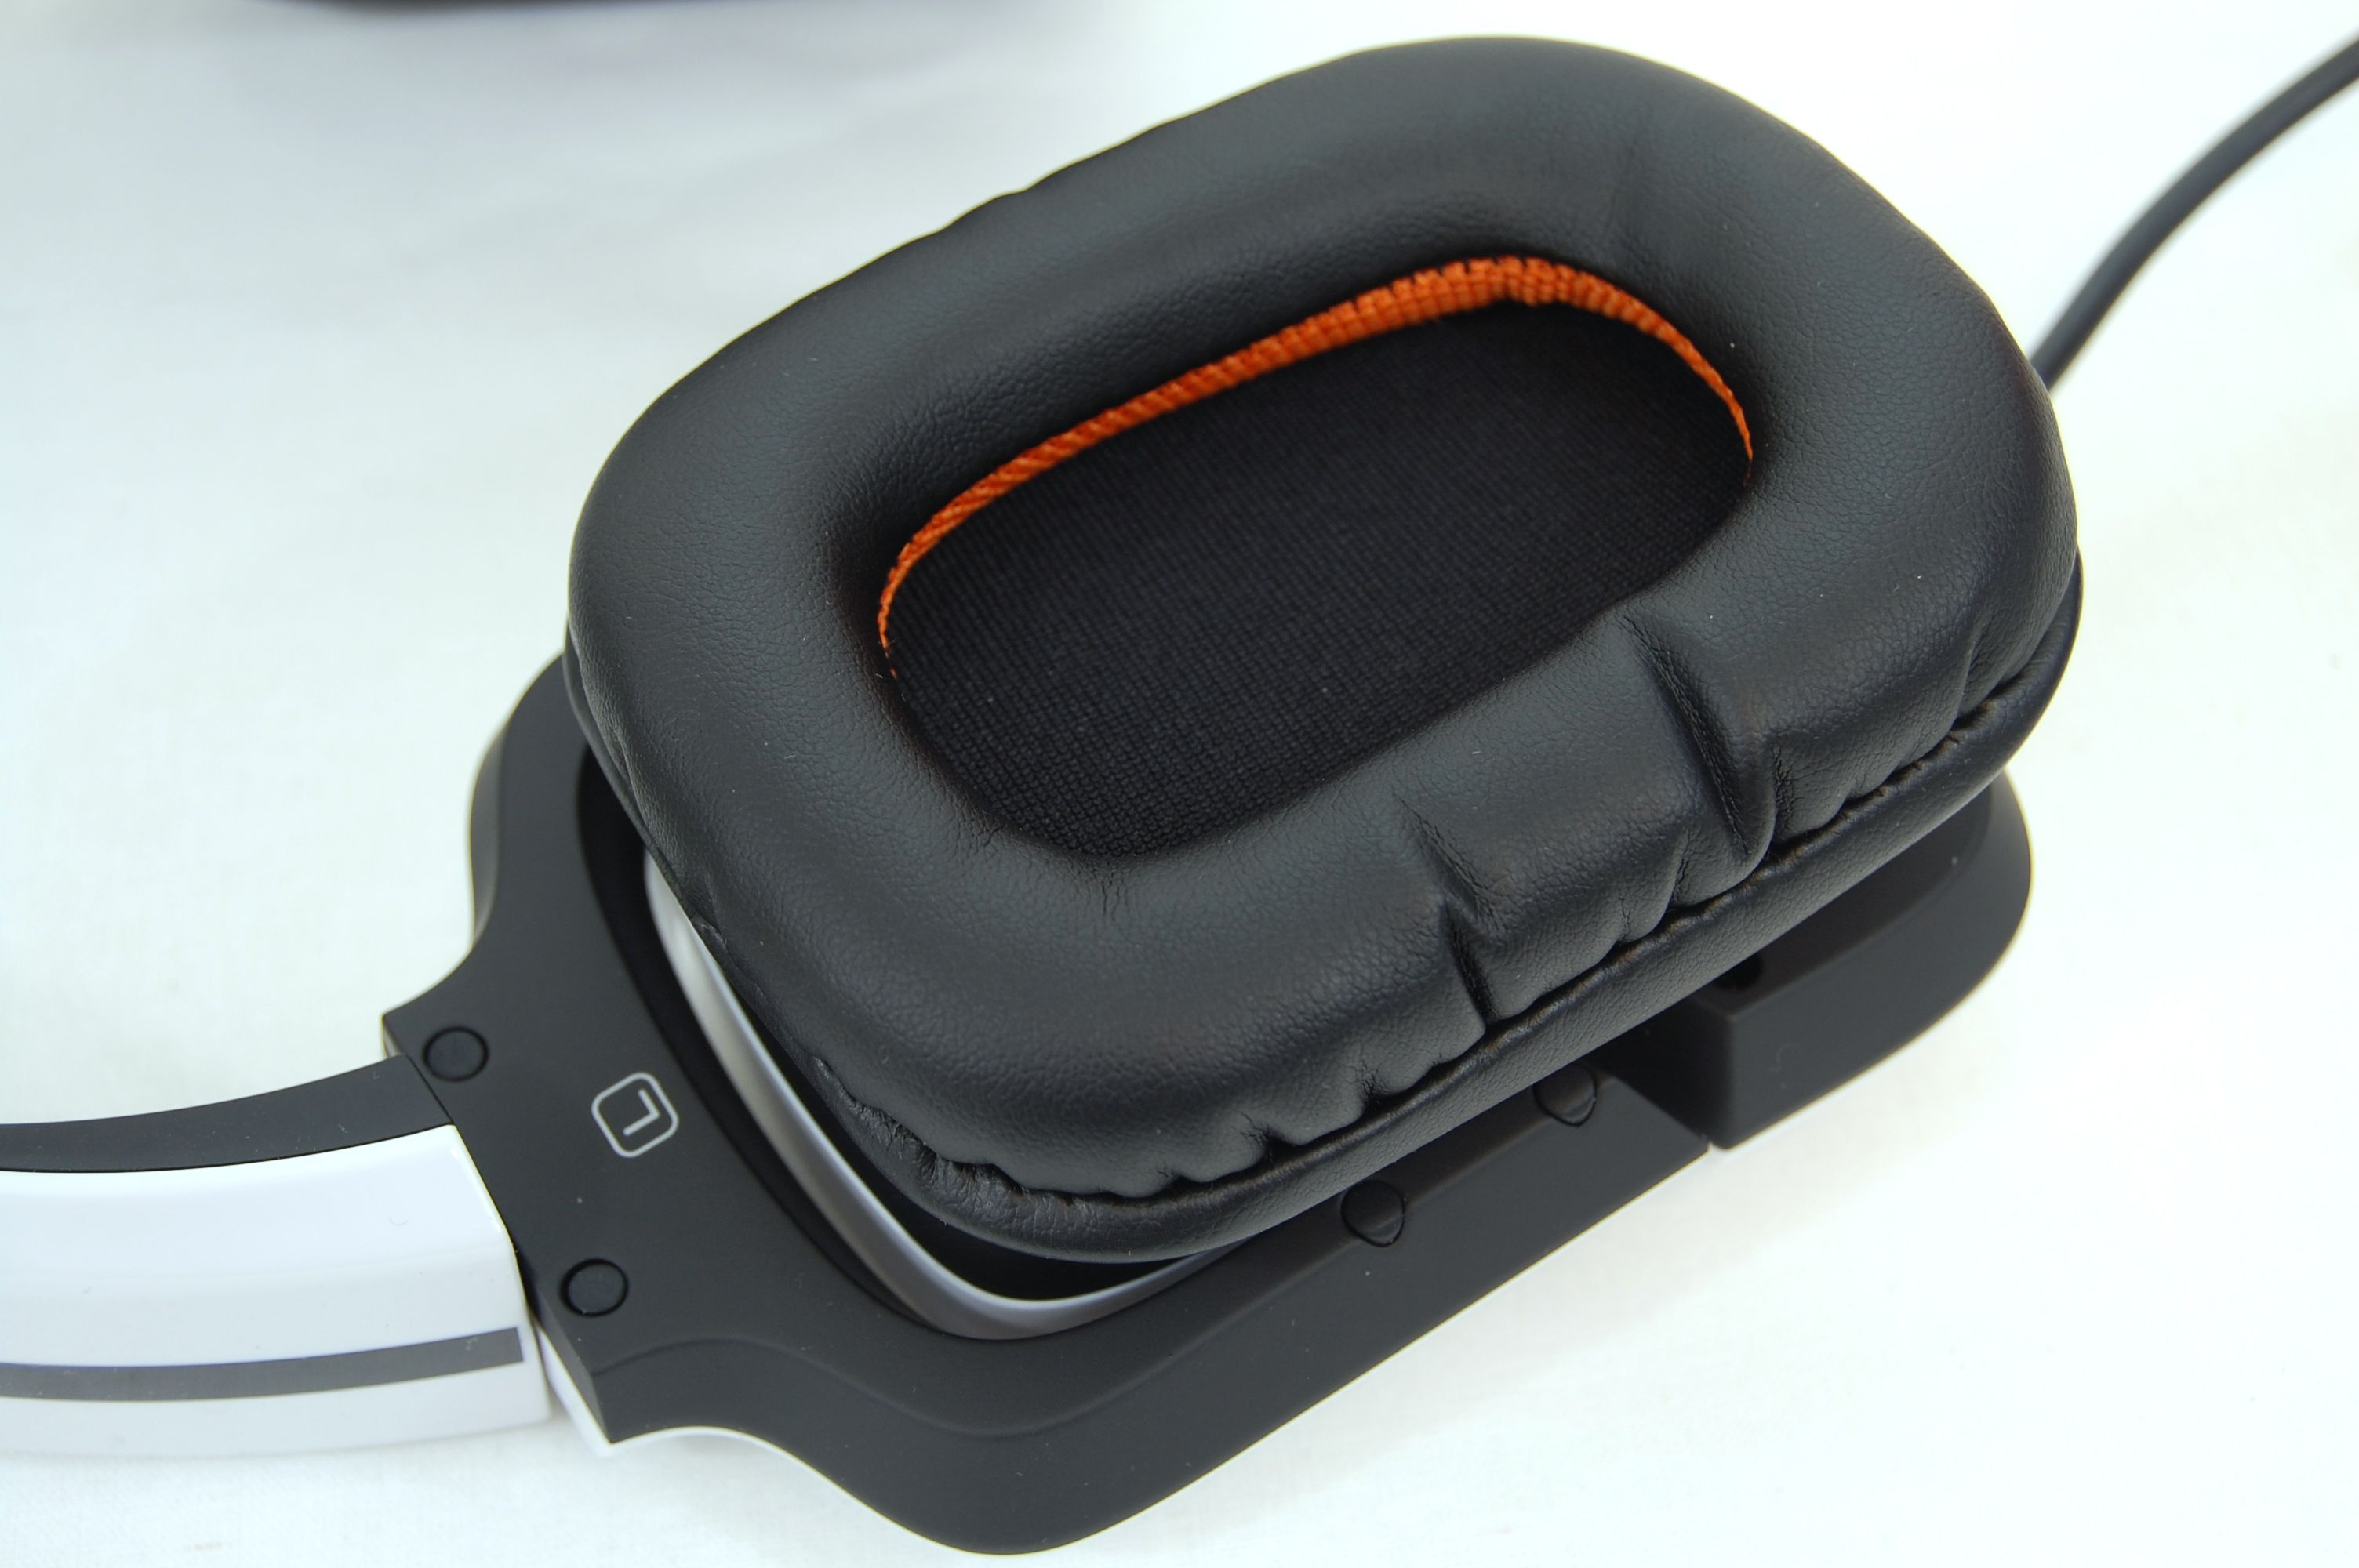 Tritton by MadCatz Pro+ 5.1 Surround Gaming Headset Review - Earcup Padding